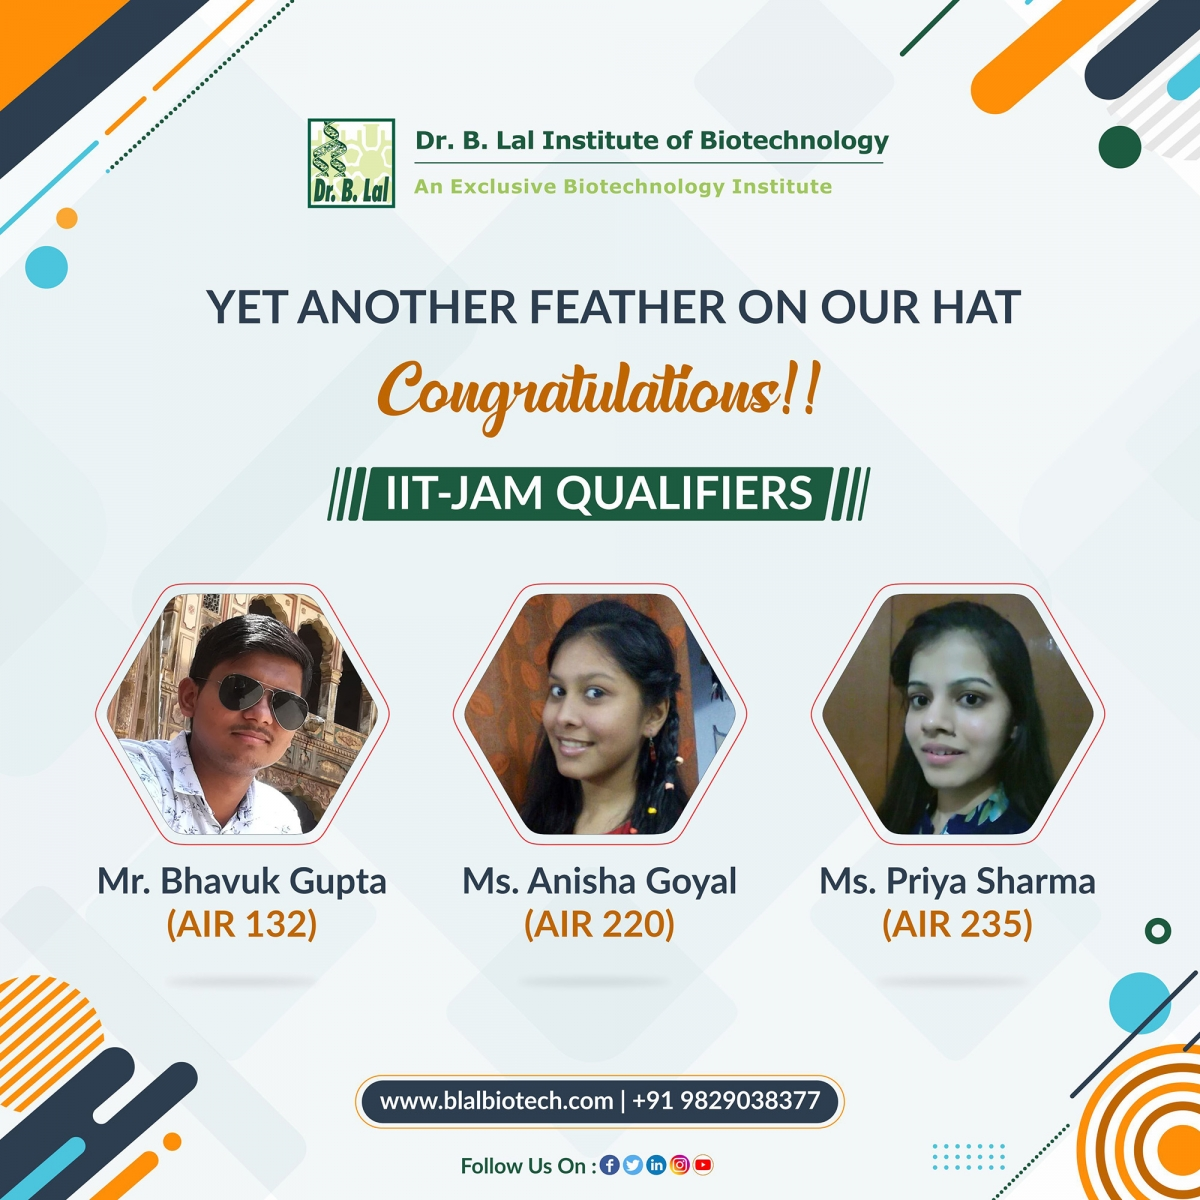 IIT-JAM QUALIFIERS | Dr. B. Lal Institute of Biotechnology